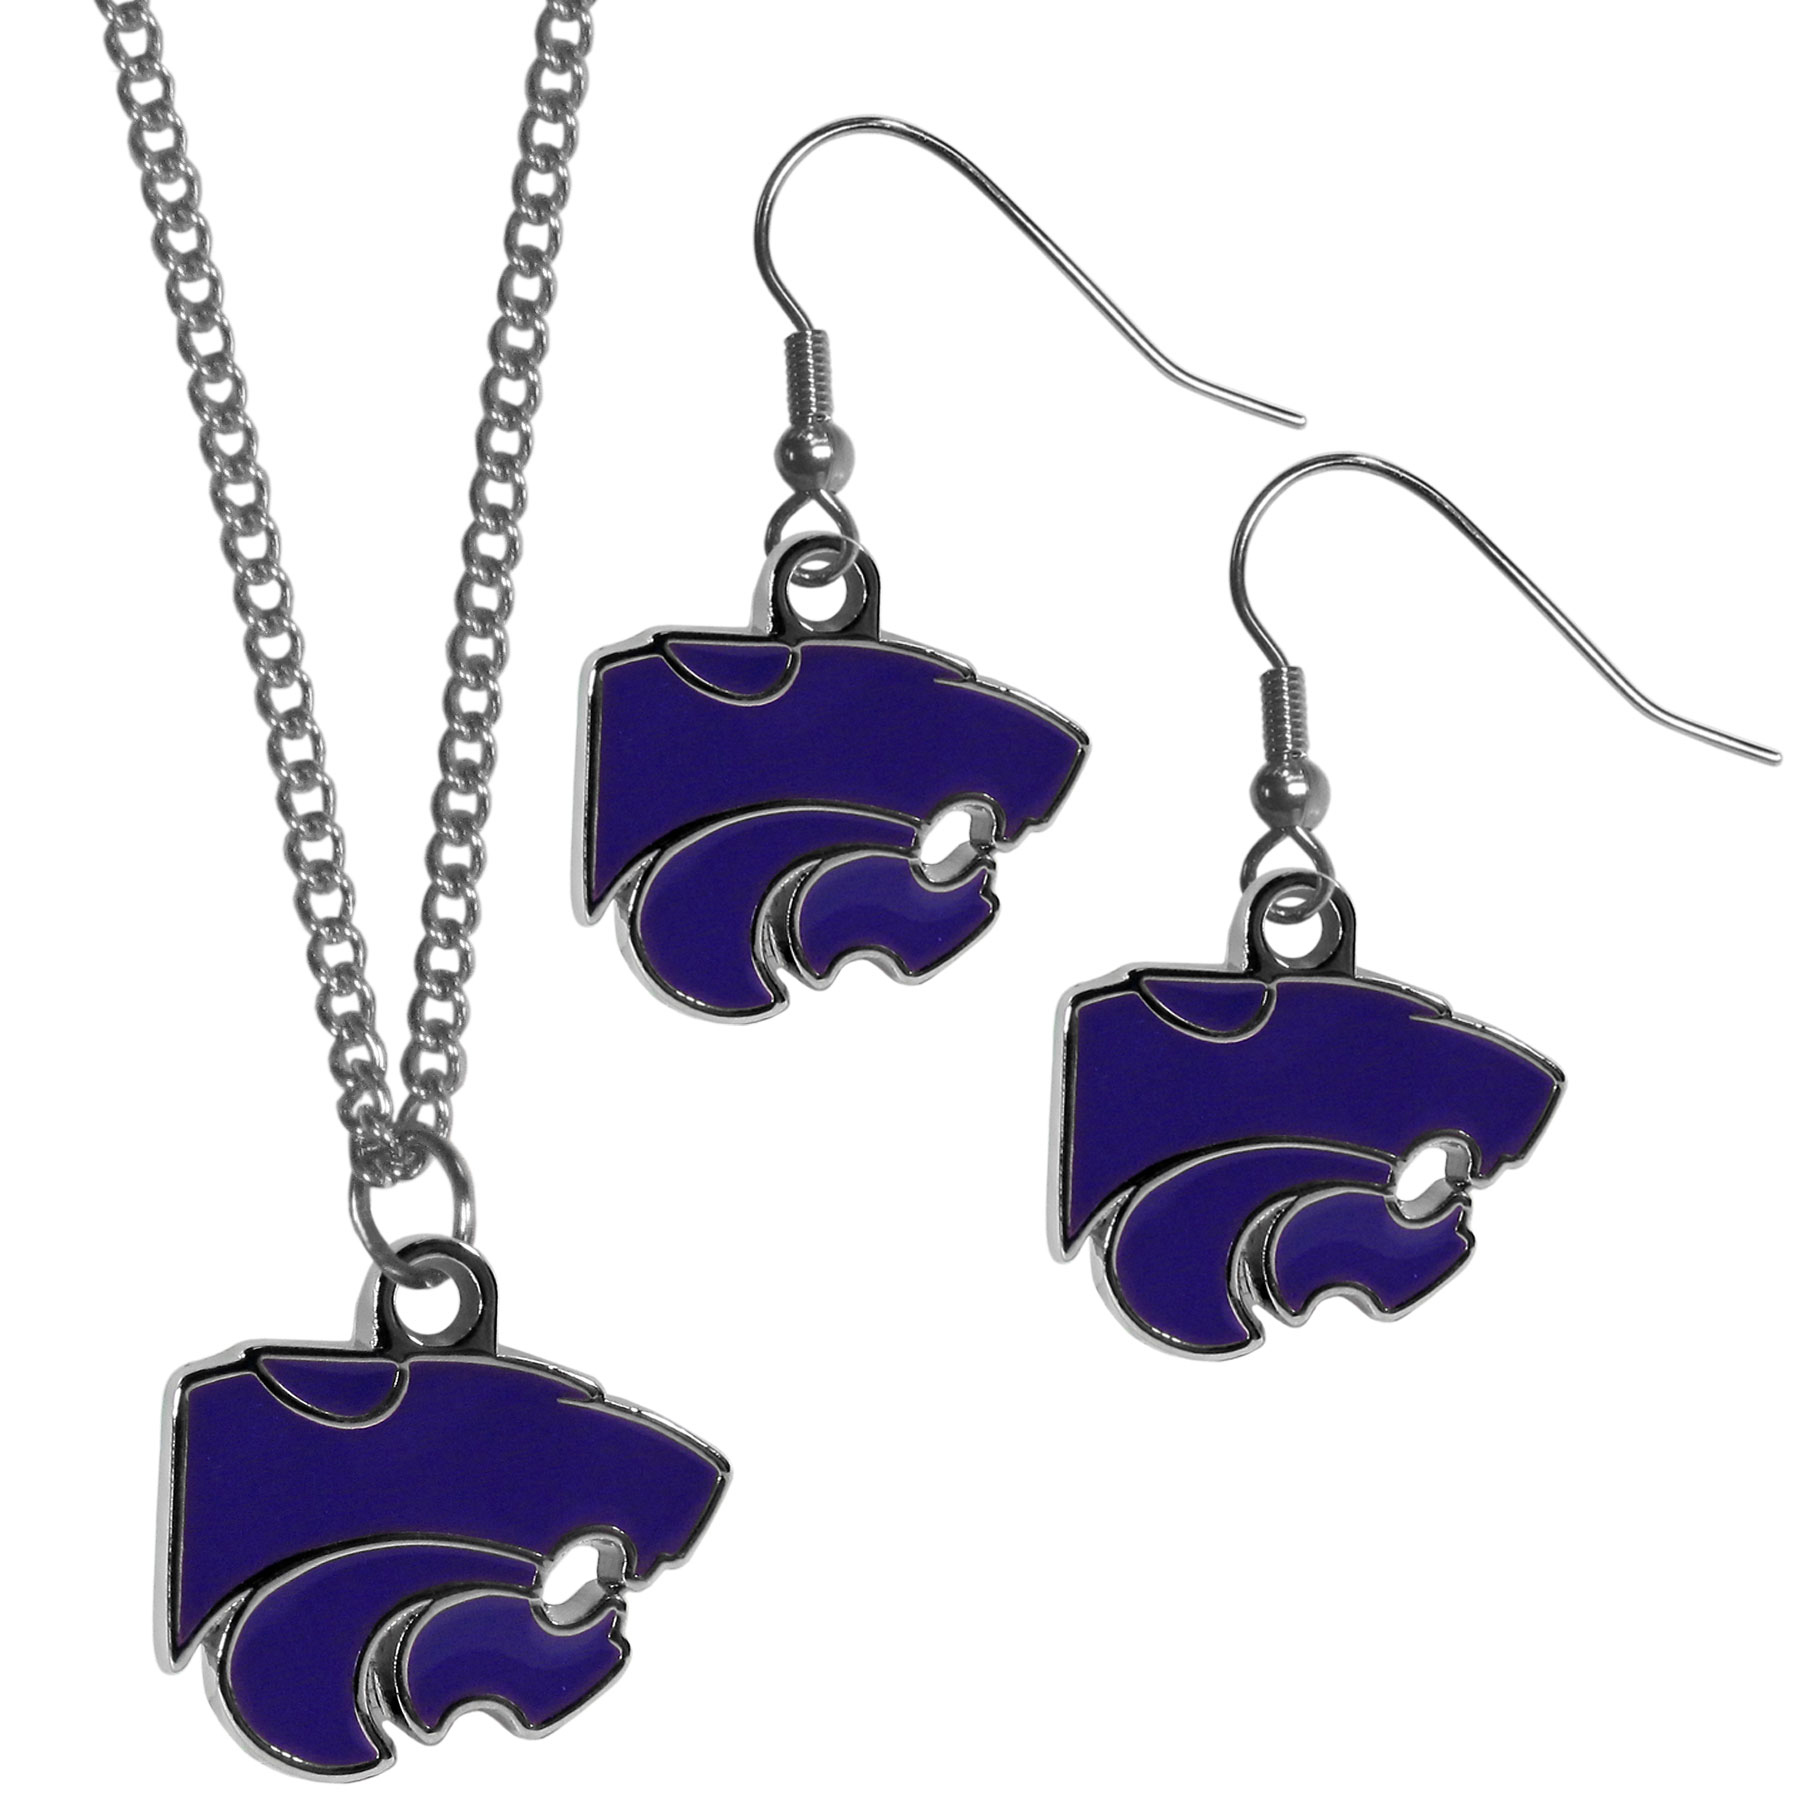 Kansas St. Wildcats Dangle Earrings and Chain Necklace Set - This classic jewelry set contains are most popular Kansas St. Wildcats dangle earrings and 22 inch chain necklace. The trendy, dangle earrings are lightweight and feature a fully cast metal team charm with enameled team colors. The matching necklace completes this fashion forward combo and is a spirited set that is perfect for game day but nice enough for everyday.